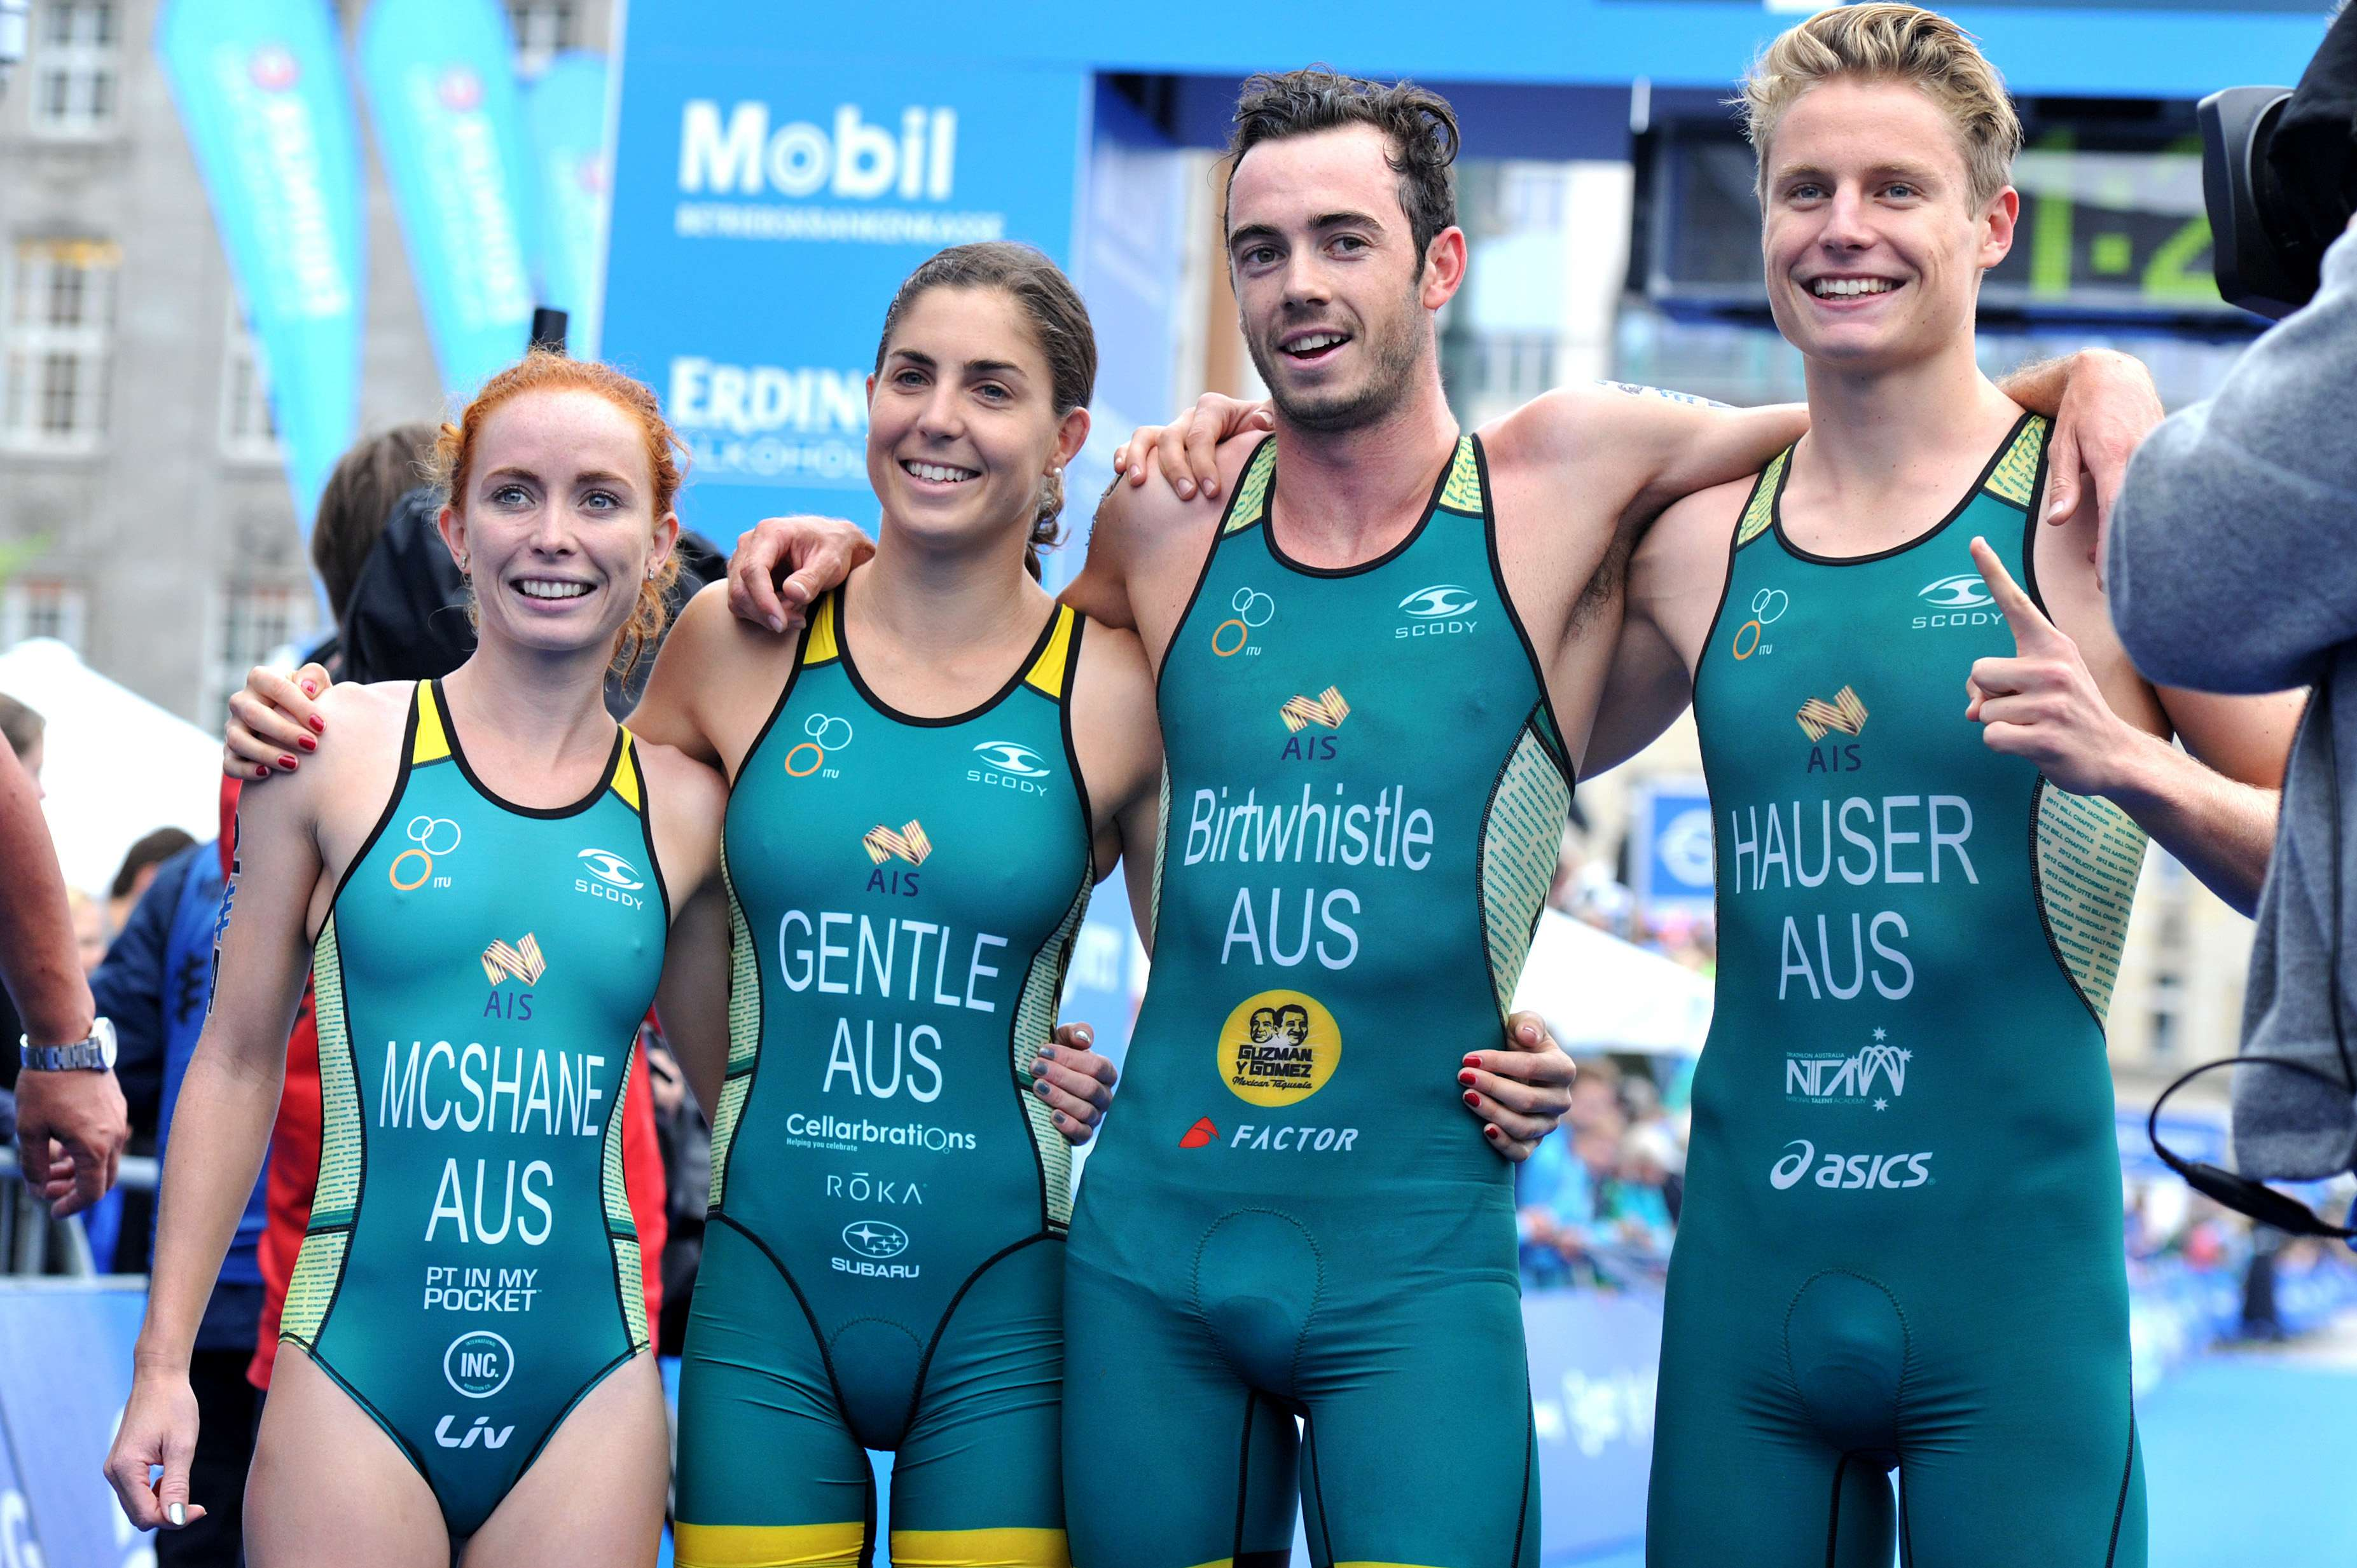 Triathlon Teams Relay World Championship in Hamburg